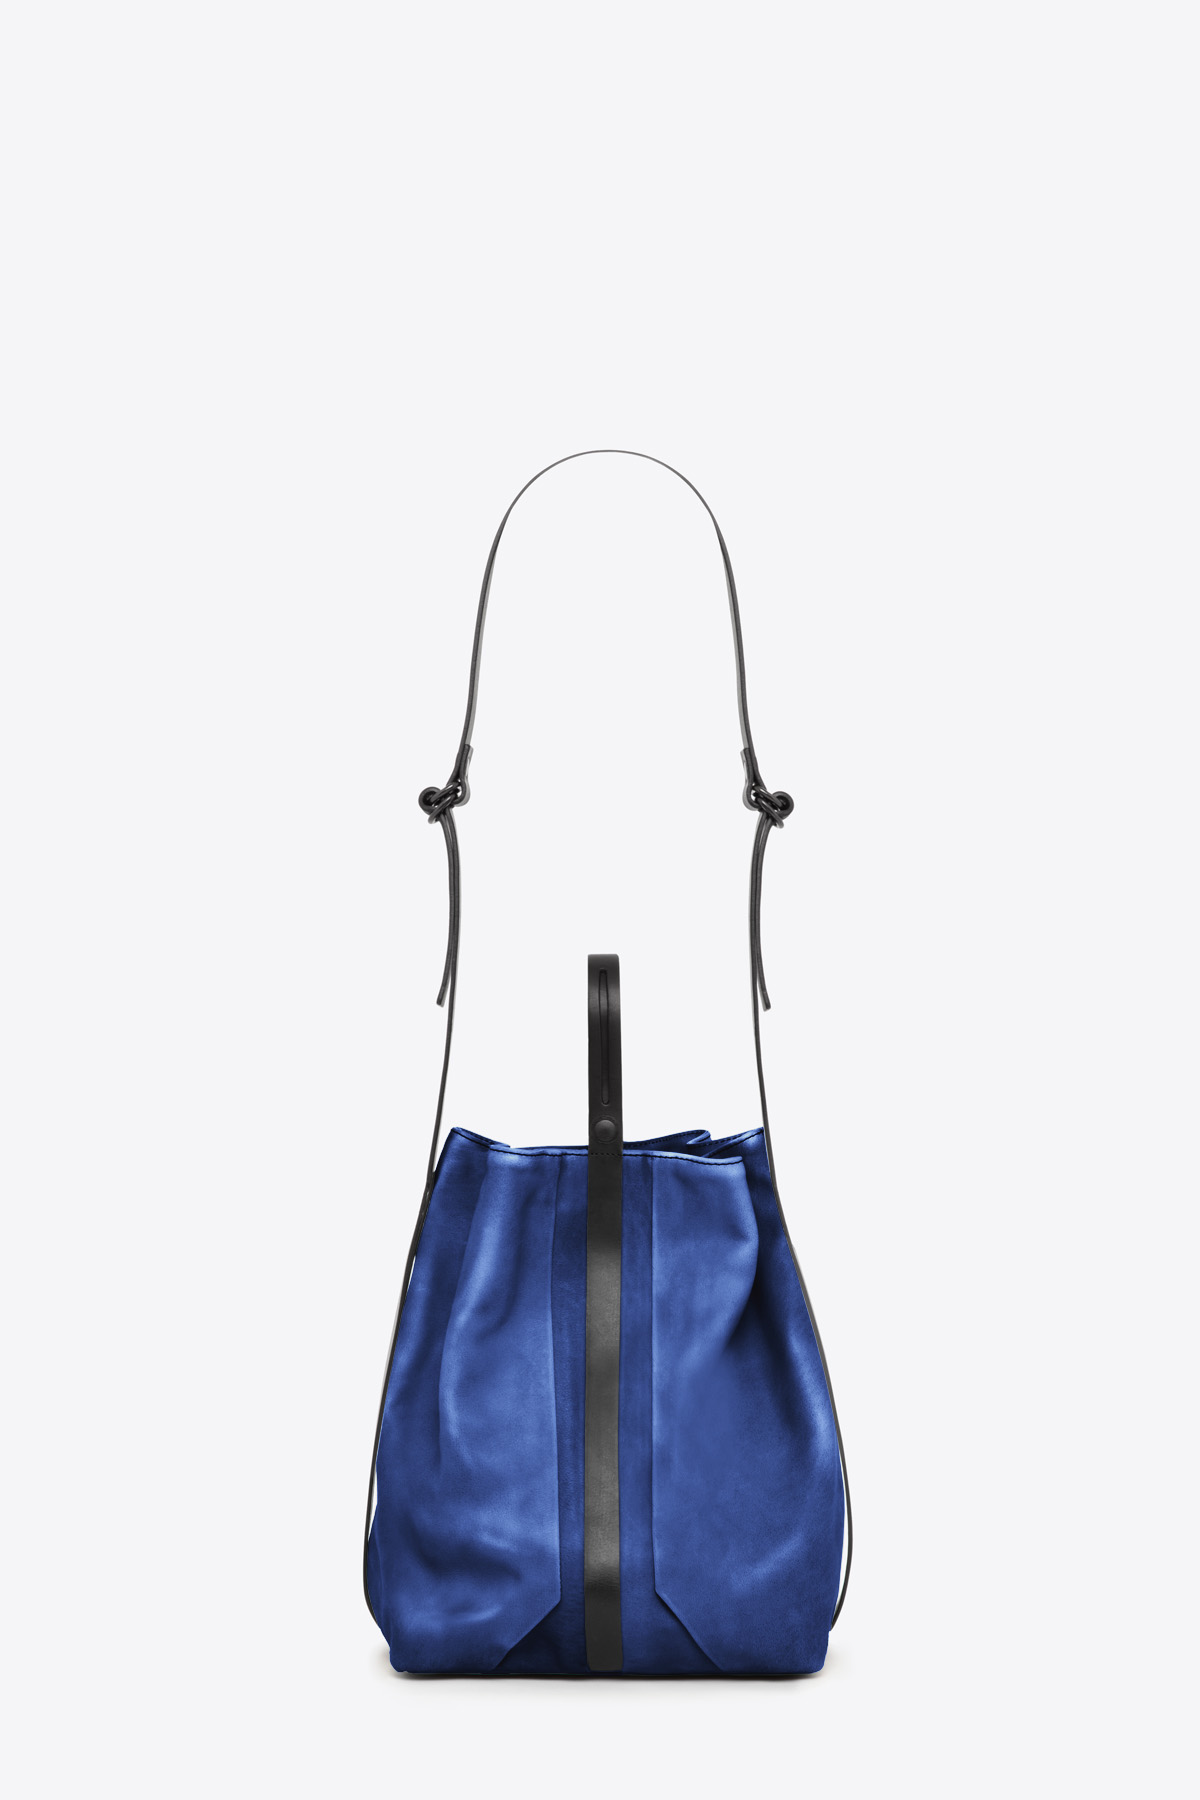 dclr010-bucketbag-a20-royalblue-back